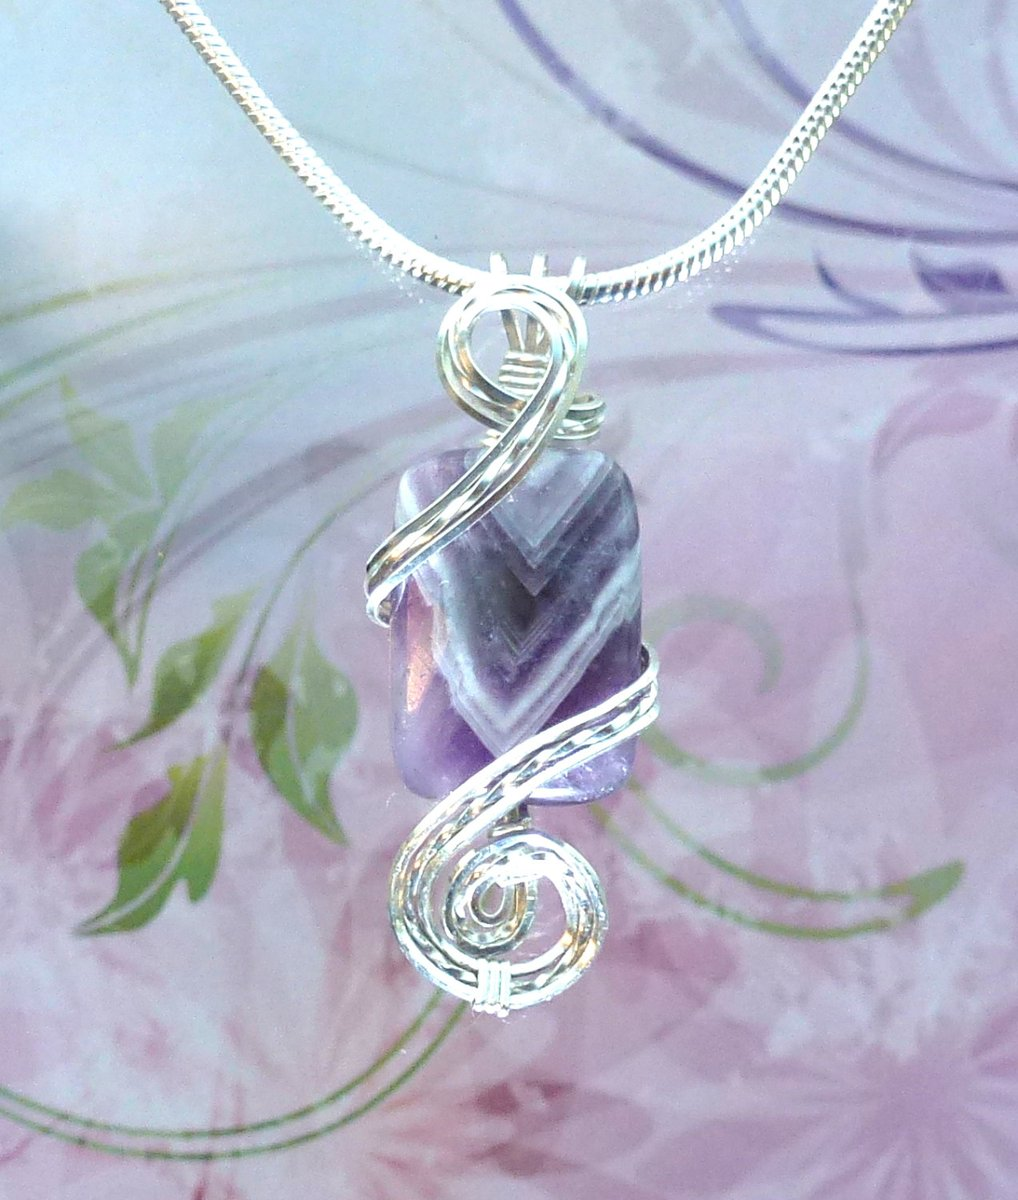 Purple Amethyst Womans Pendant Necklace Wire Wrapped Jewelry Handmade in Silver FREE SHIPPING https://etsy.me/2qIAyp1 #fashion #etsy #etsygifts #etsymntt #handmade #jewelry #handmadejewelry #bohemianpic.twitter.com/By1S1jSpi5